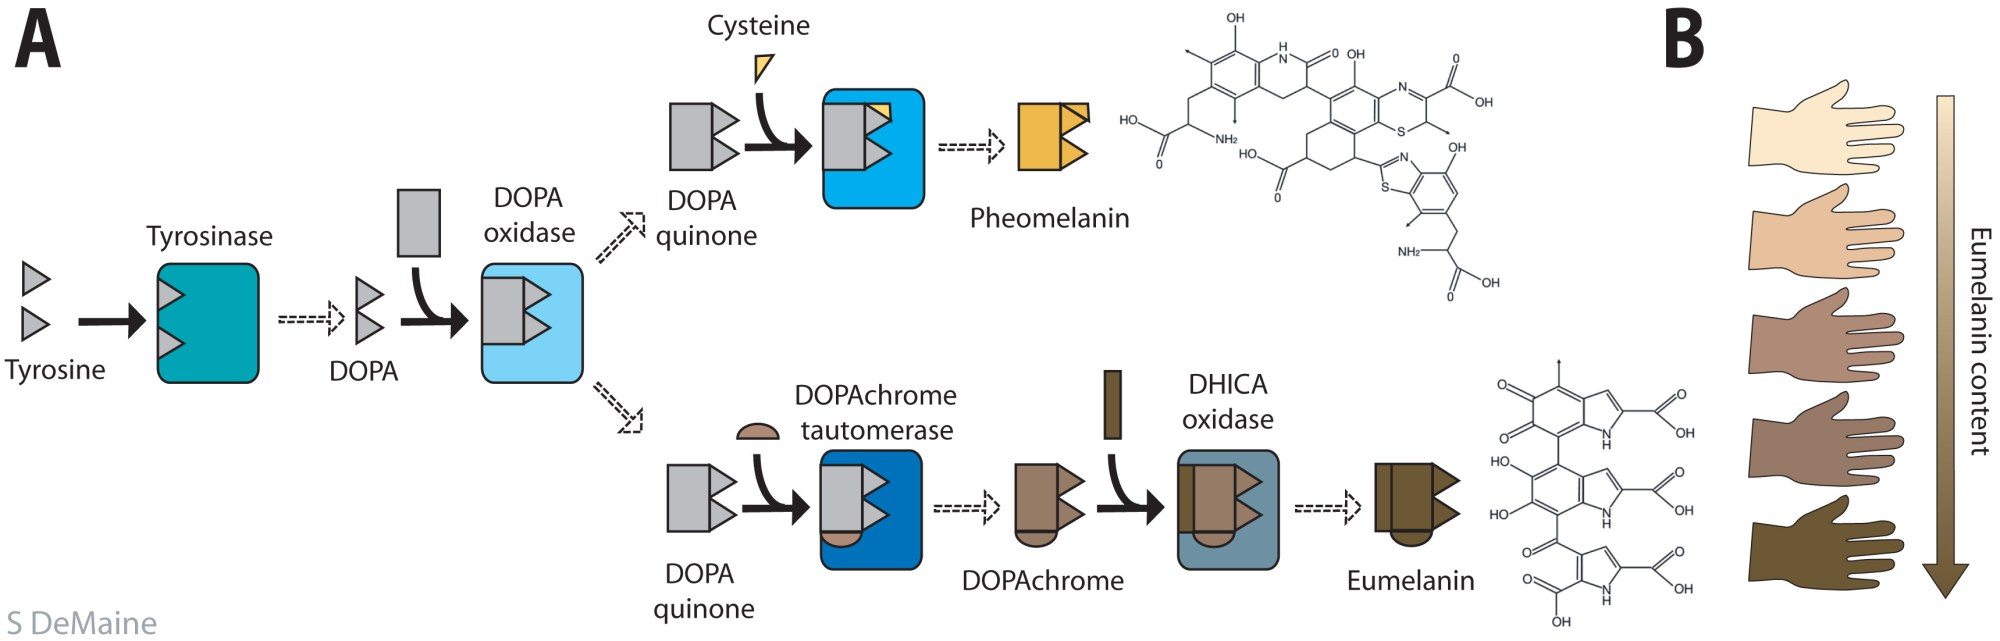 hight resolution of the metabolic pathway producing pheo and eumelanin a the common precursor is tyrosine and its derivative dopa from where the pathway branches